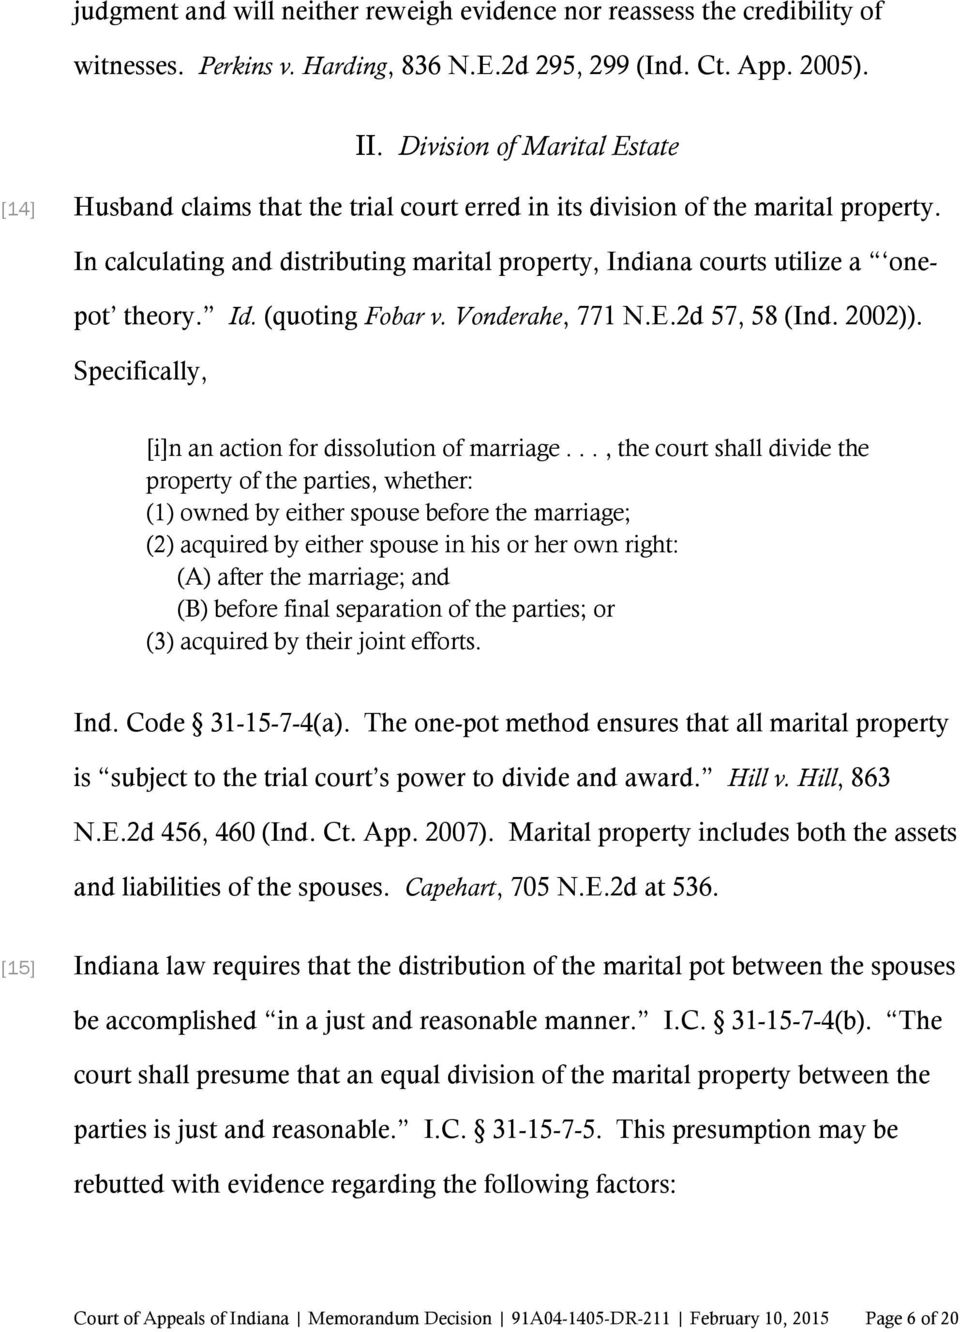 In calculating and distributing marital property, Indiana courts utilize a onepot theory. Id. (quoting Fobar v. Vonderahe, 771 N.E.2d 57, 58 (Ind. 2002)).